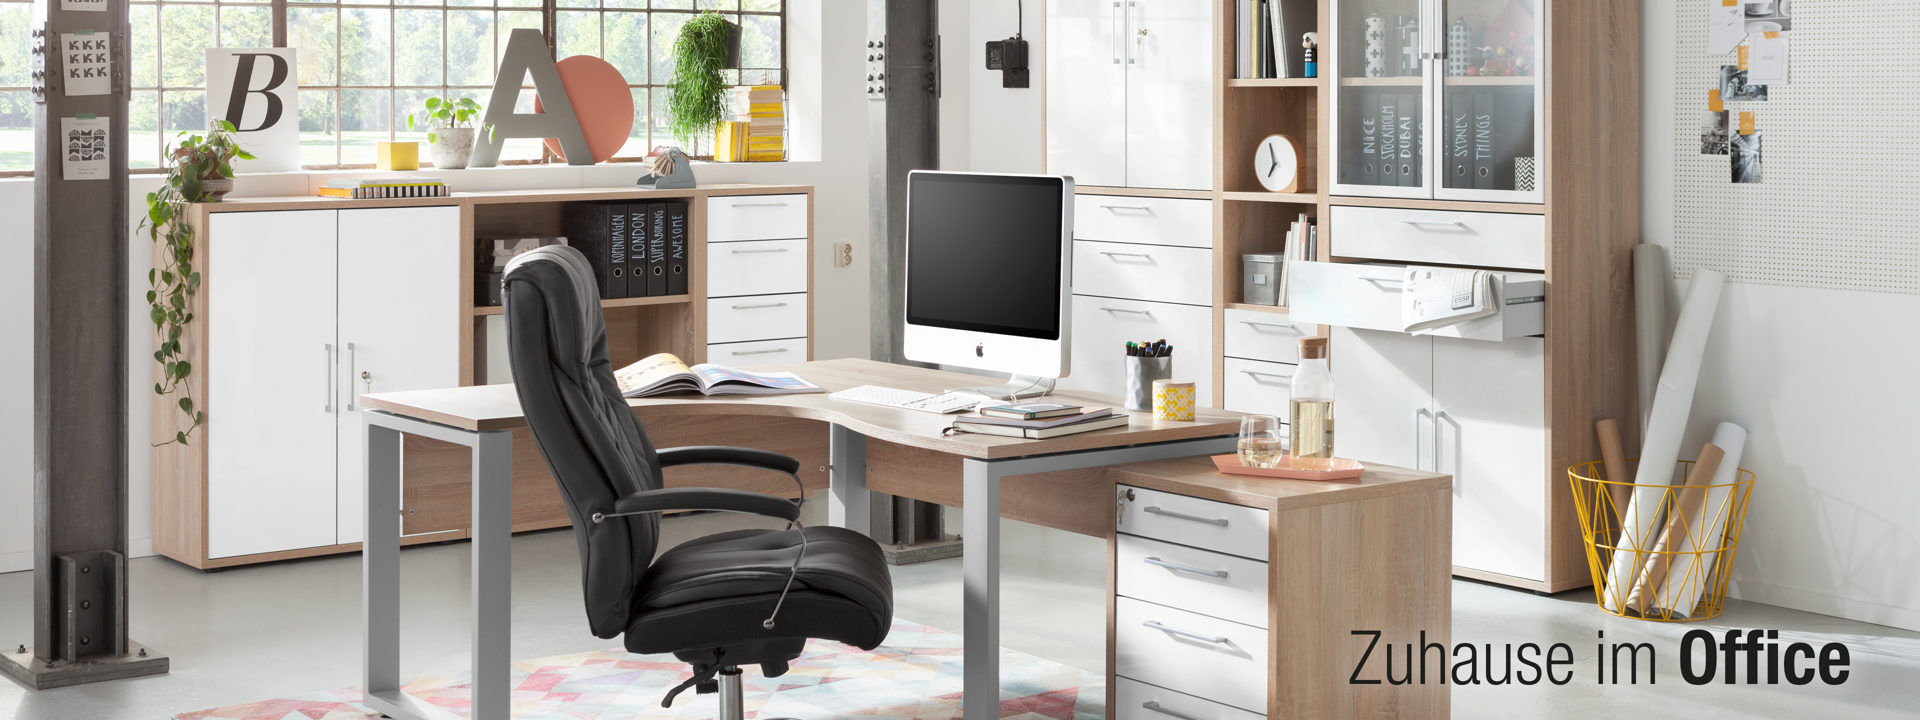 Home Office Zuhause im Office HLB 3840x1440px